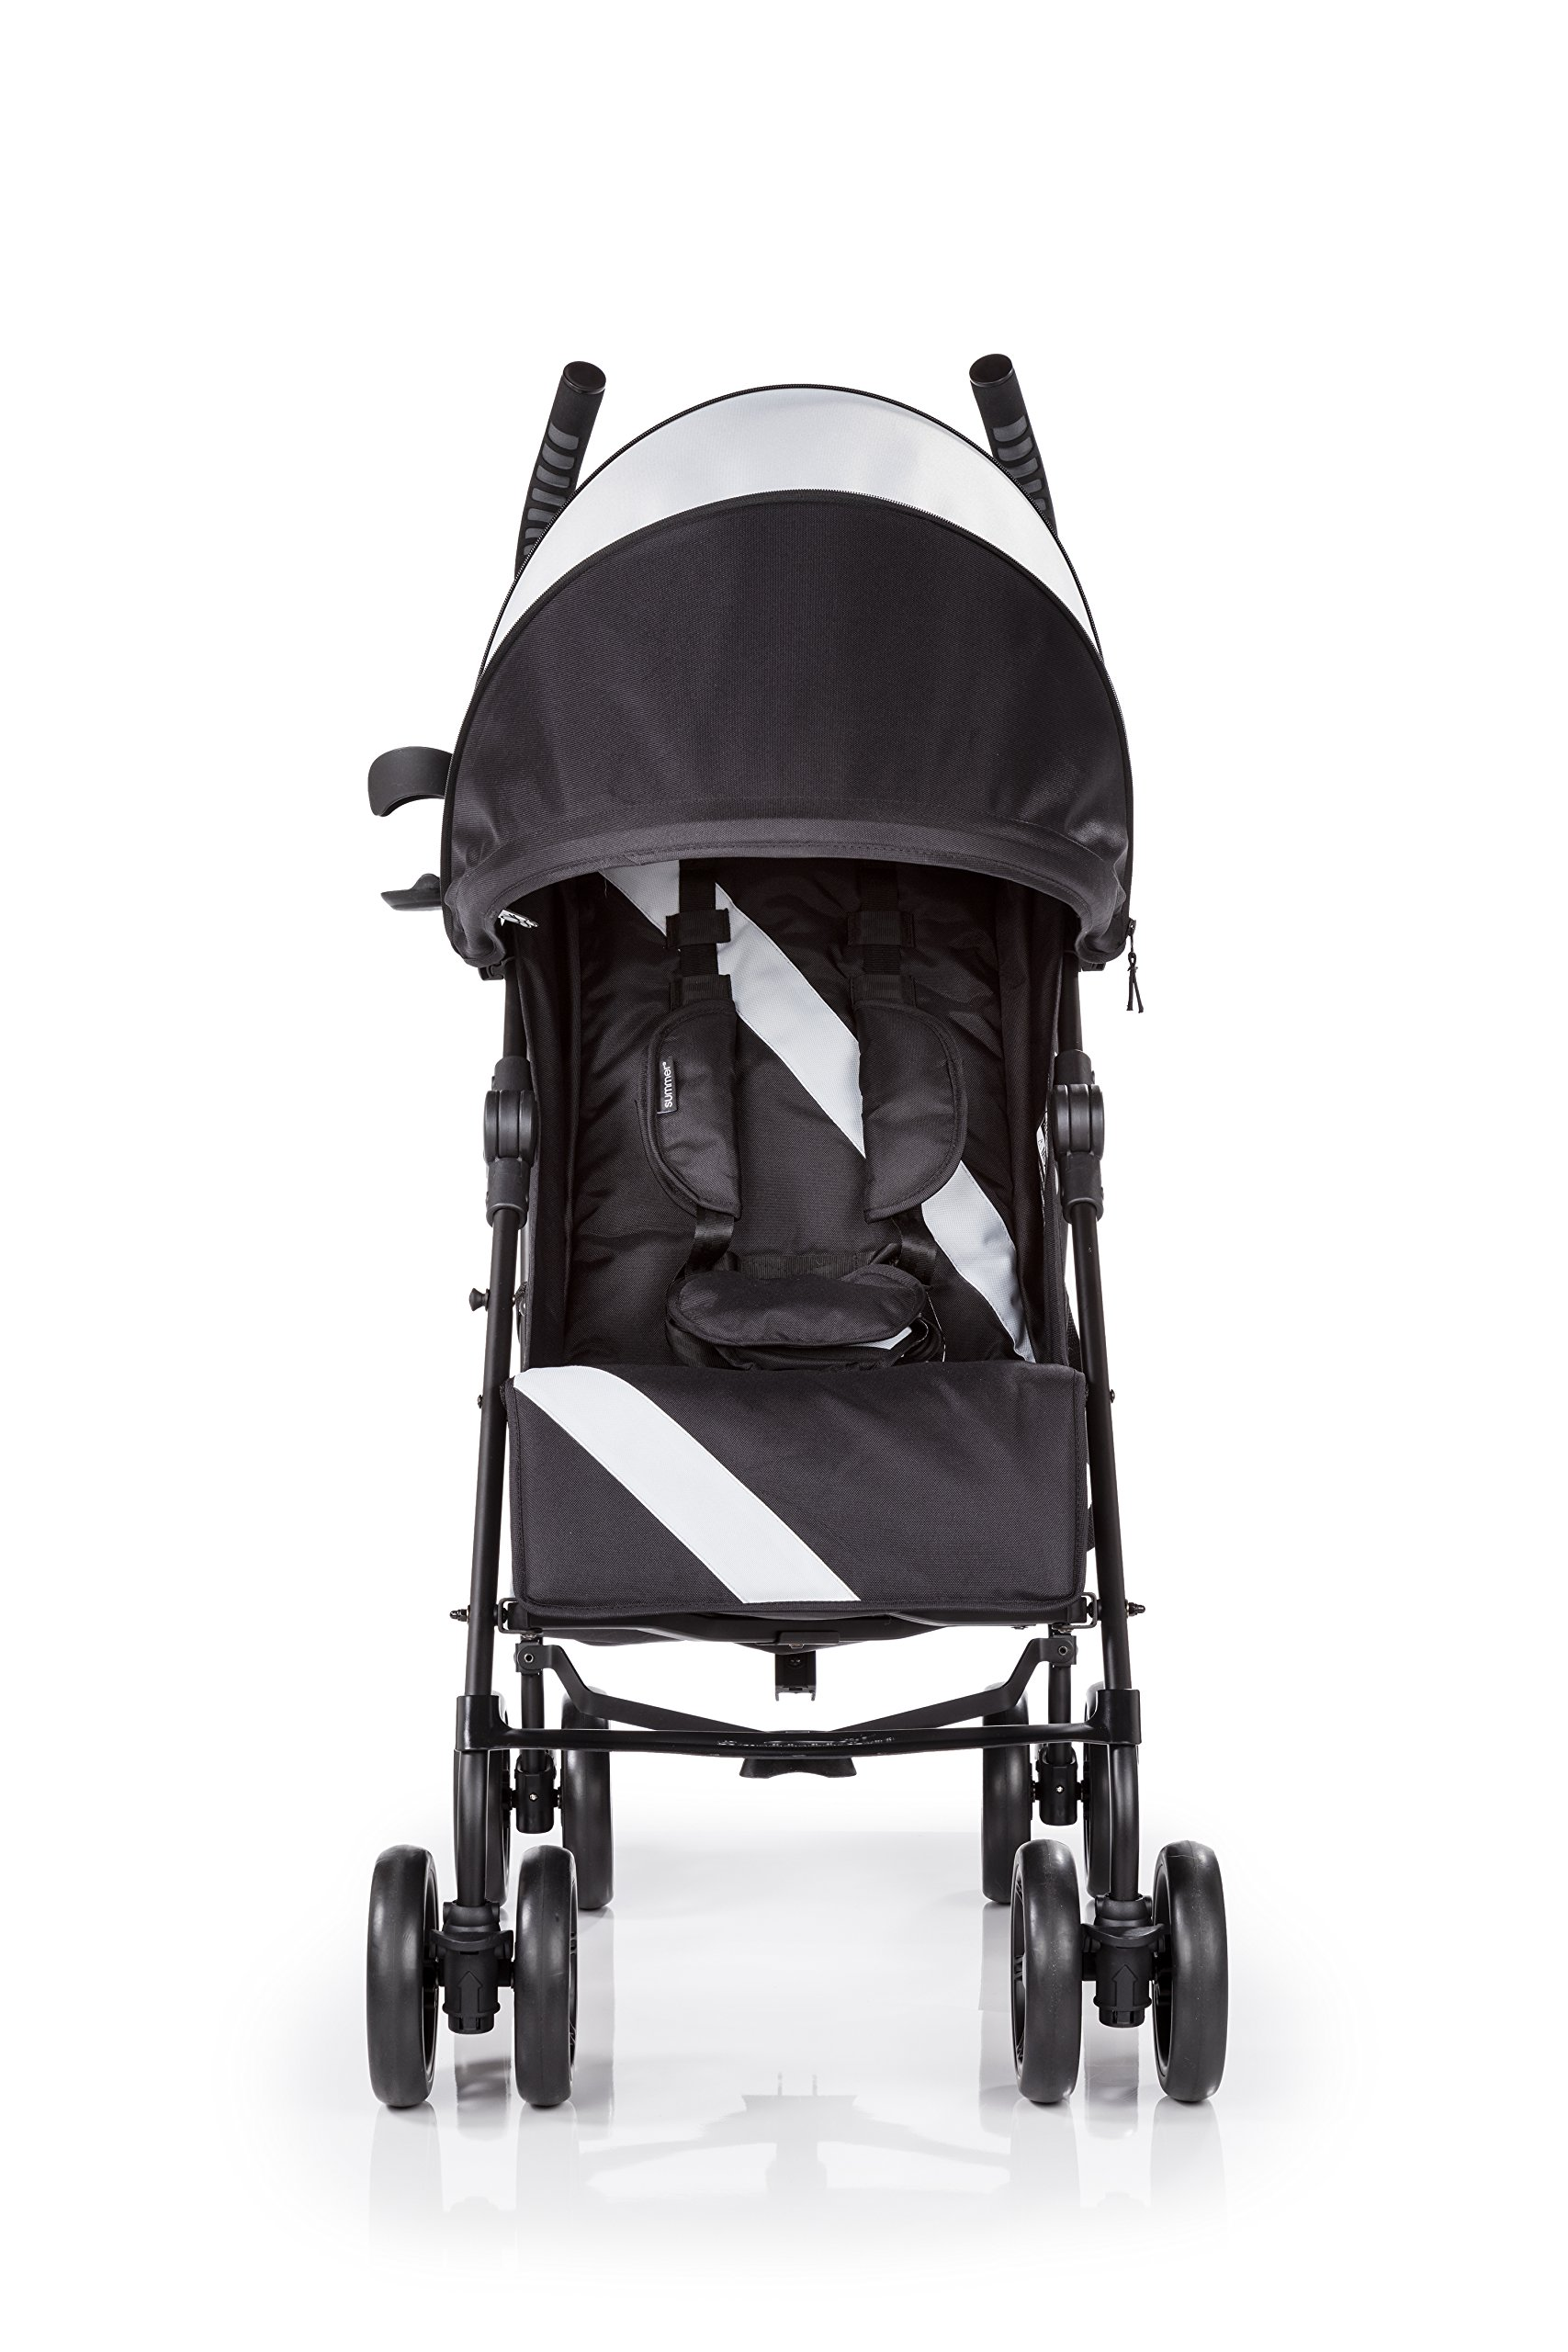 Summer Infant 3D-one Convenience Stroller, Eclipse Gray by Summer Infant (Image #2)